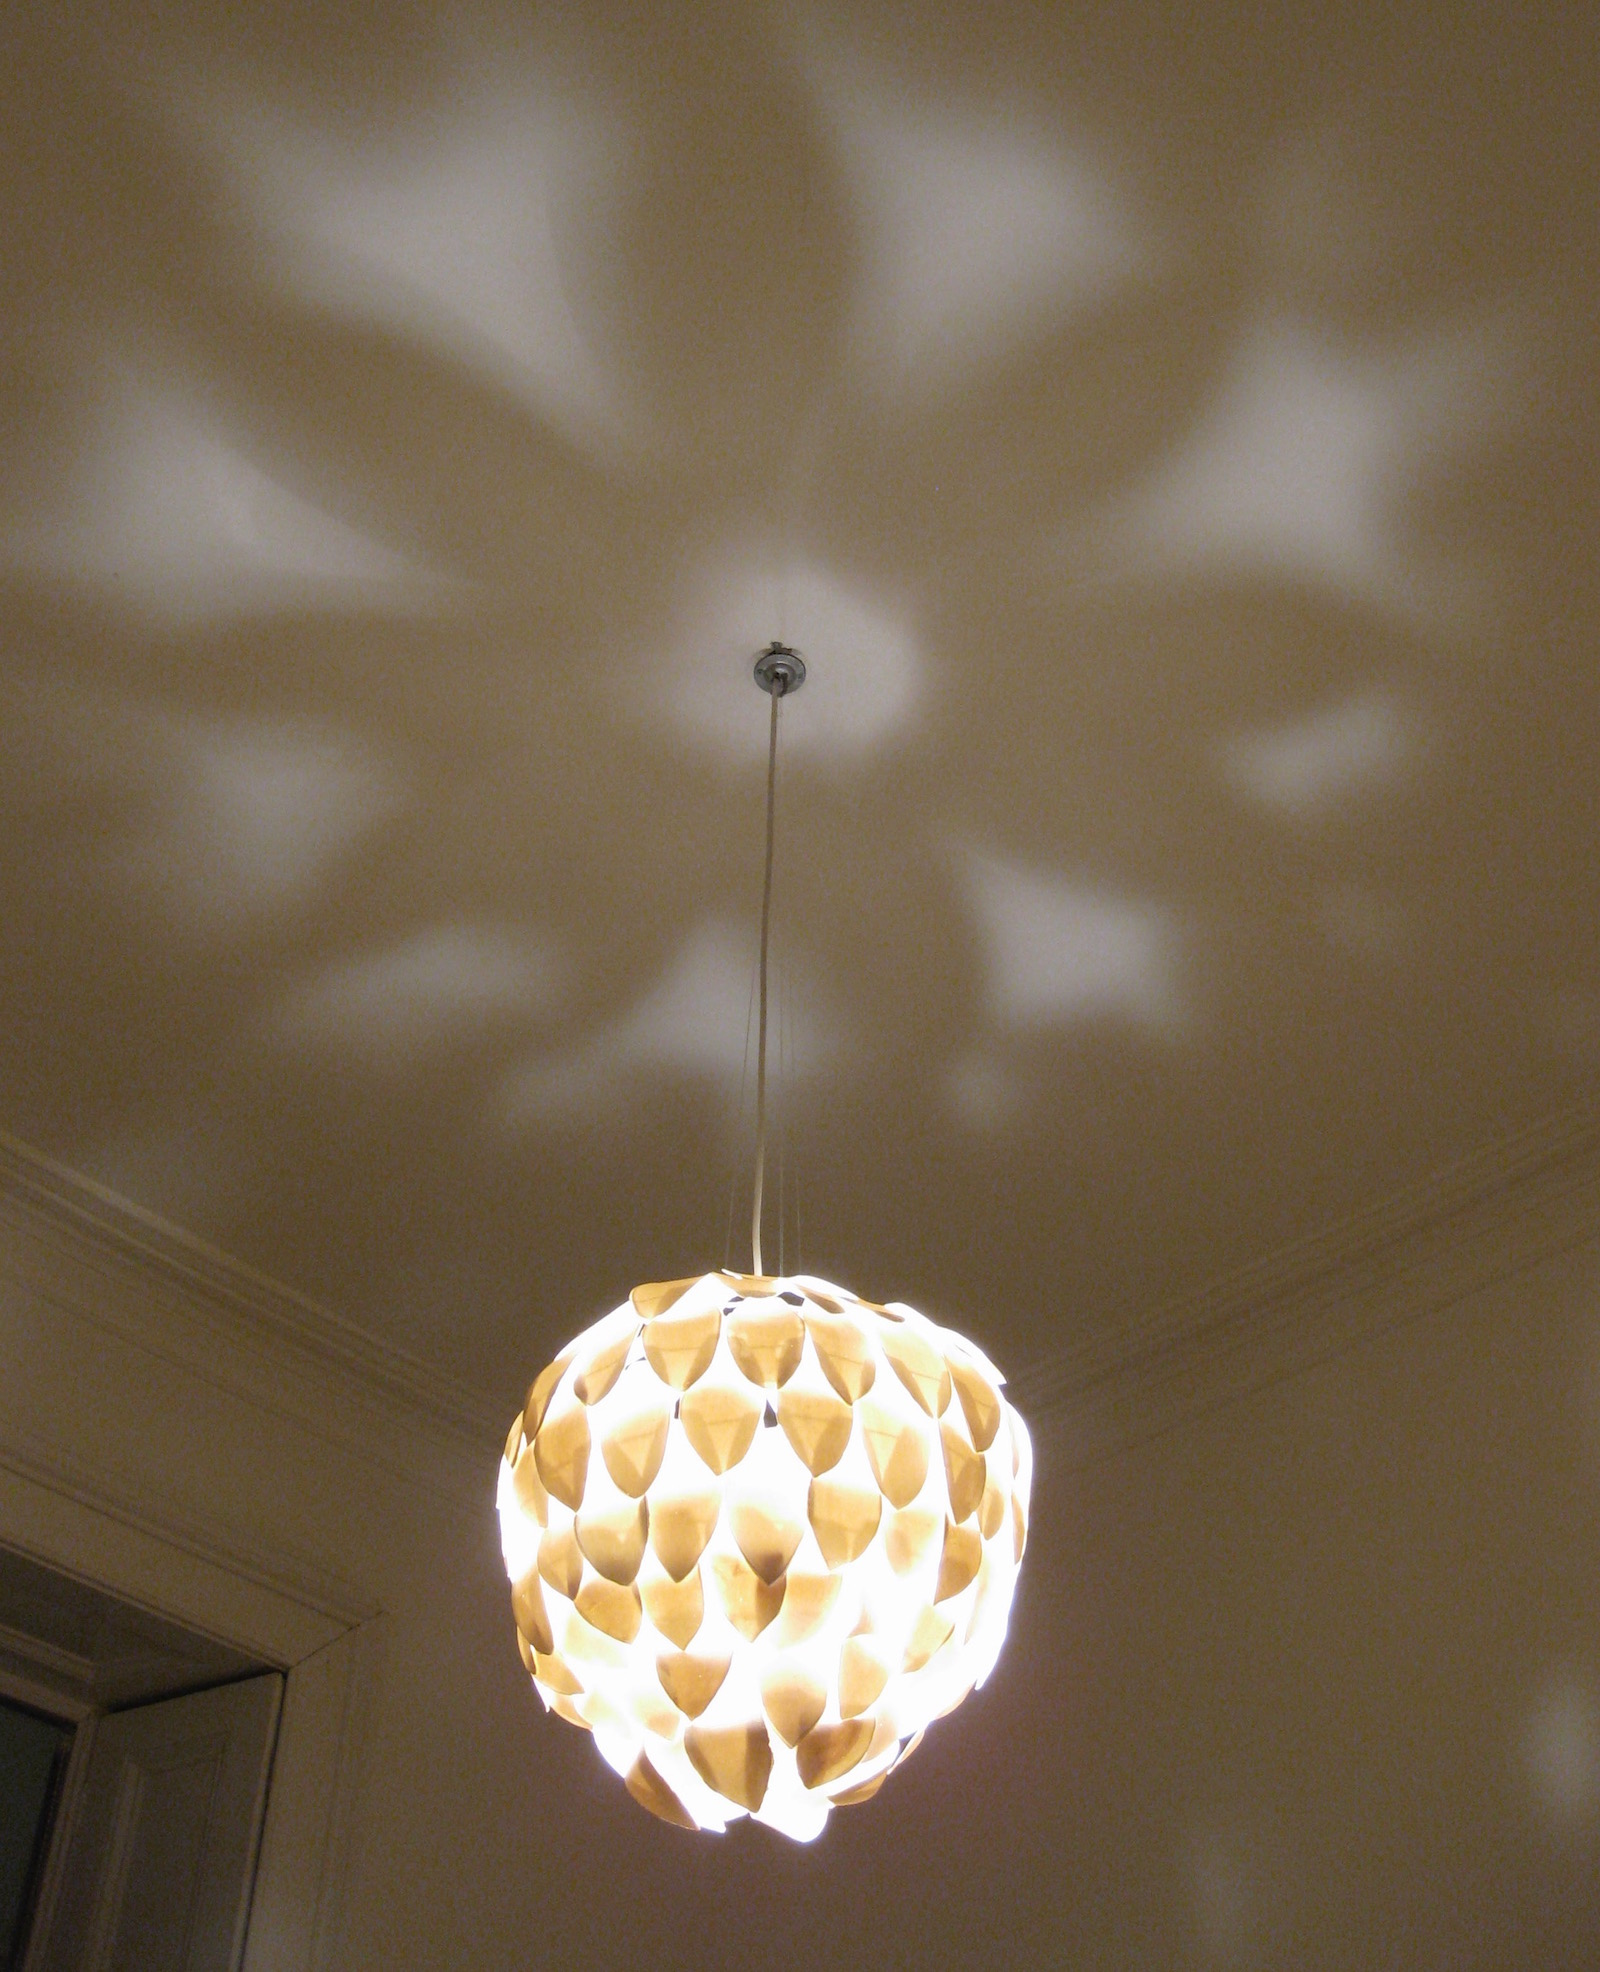 Flower shaped shadows created by chandelier on ceiling